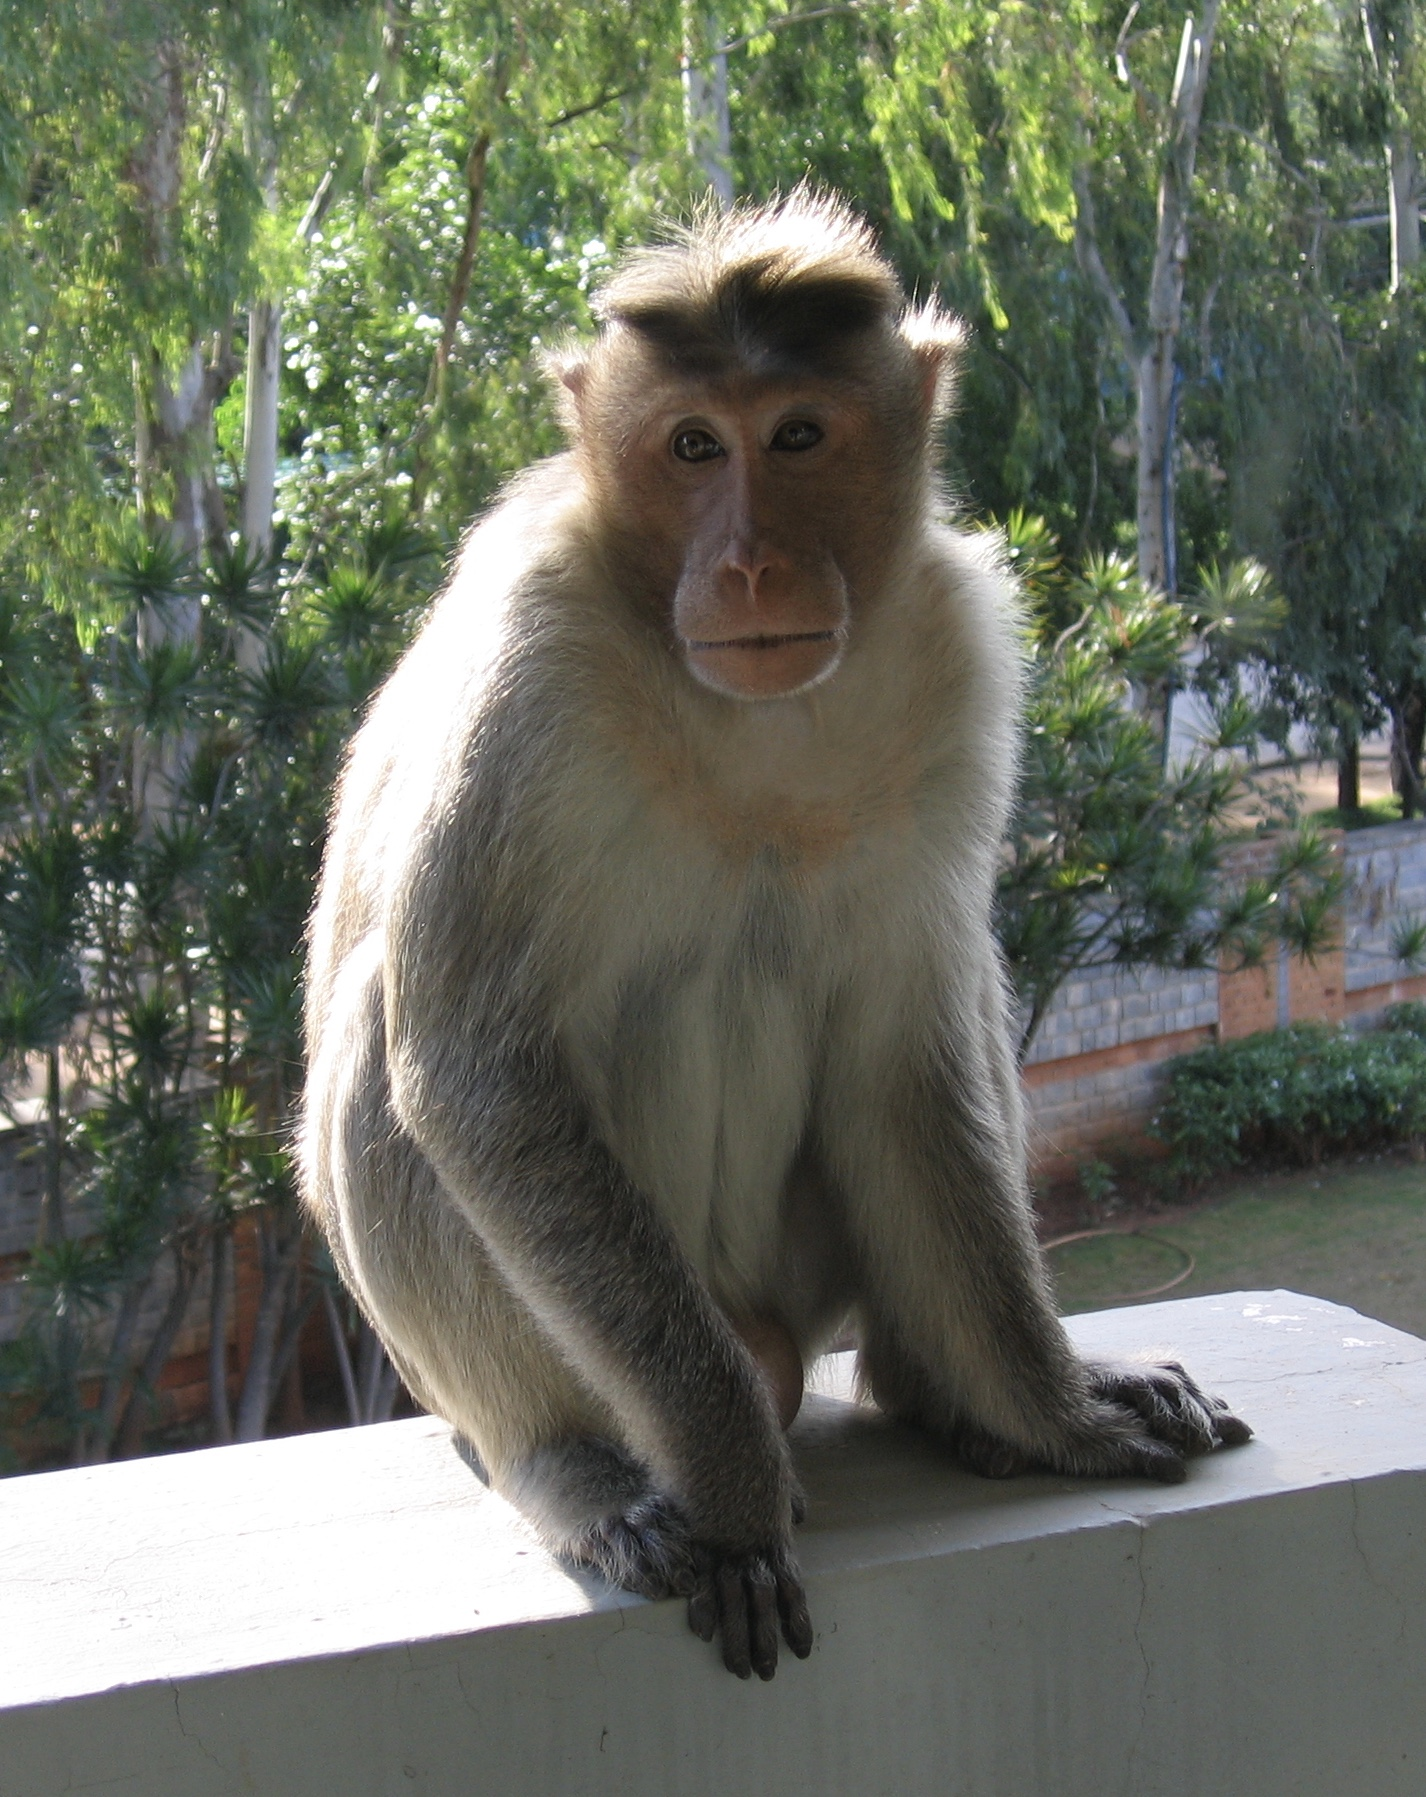 A conniving monkey in India